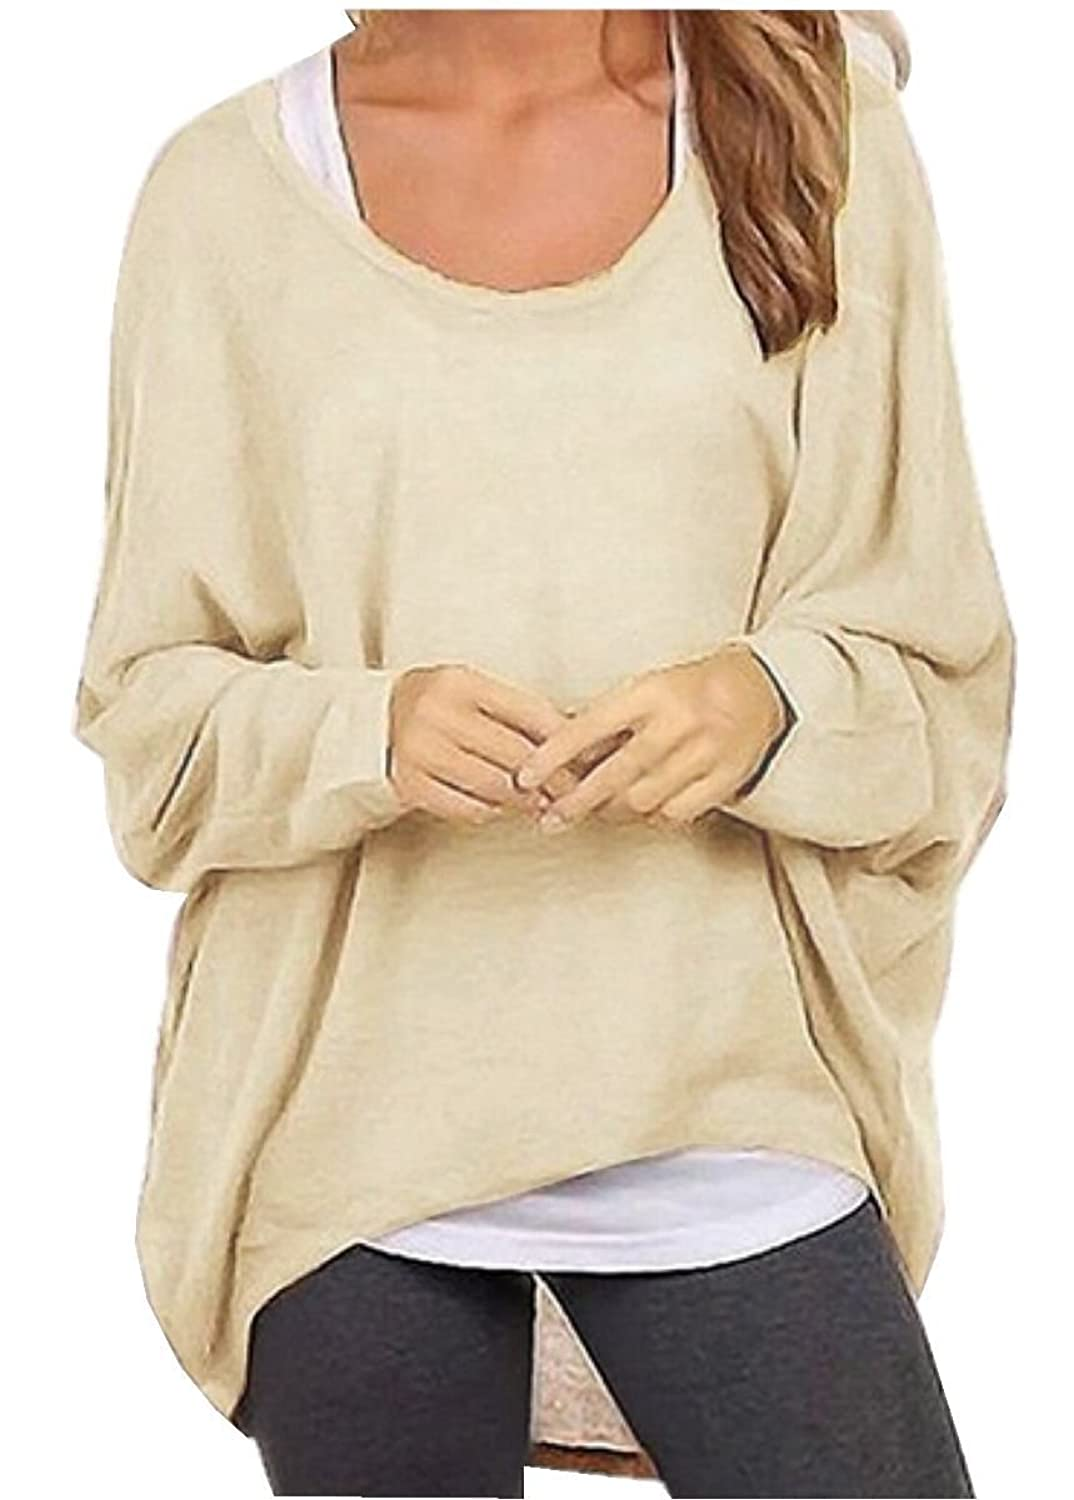 Uget Women's Casual Oversized Baggy Off-Shoulder Shirts Batwing ...